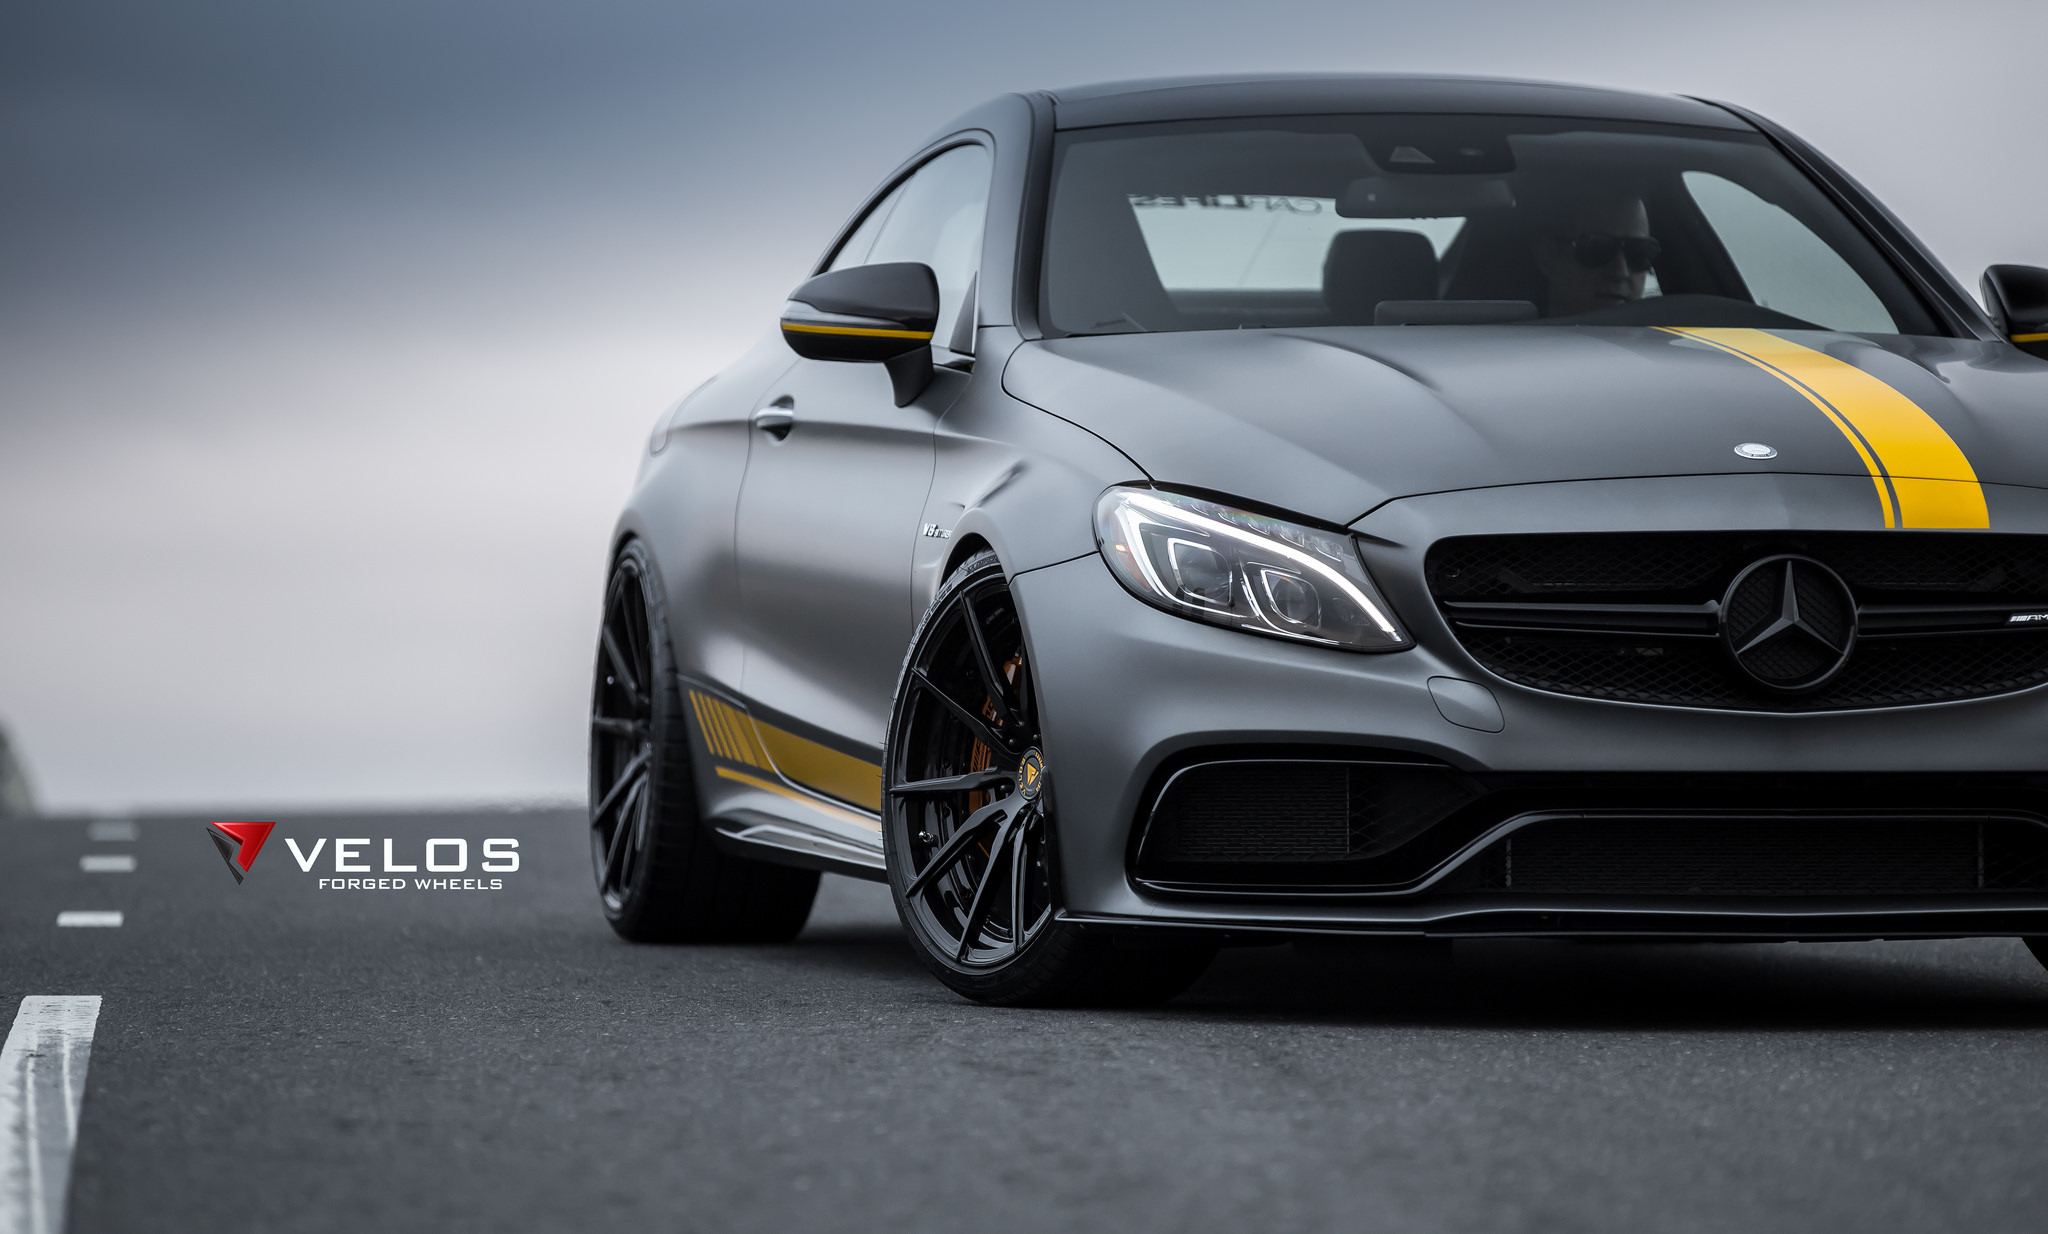 mercedes amg c63s edition 1 coupe on velos s10 forged. Black Bedroom Furniture Sets. Home Design Ideas